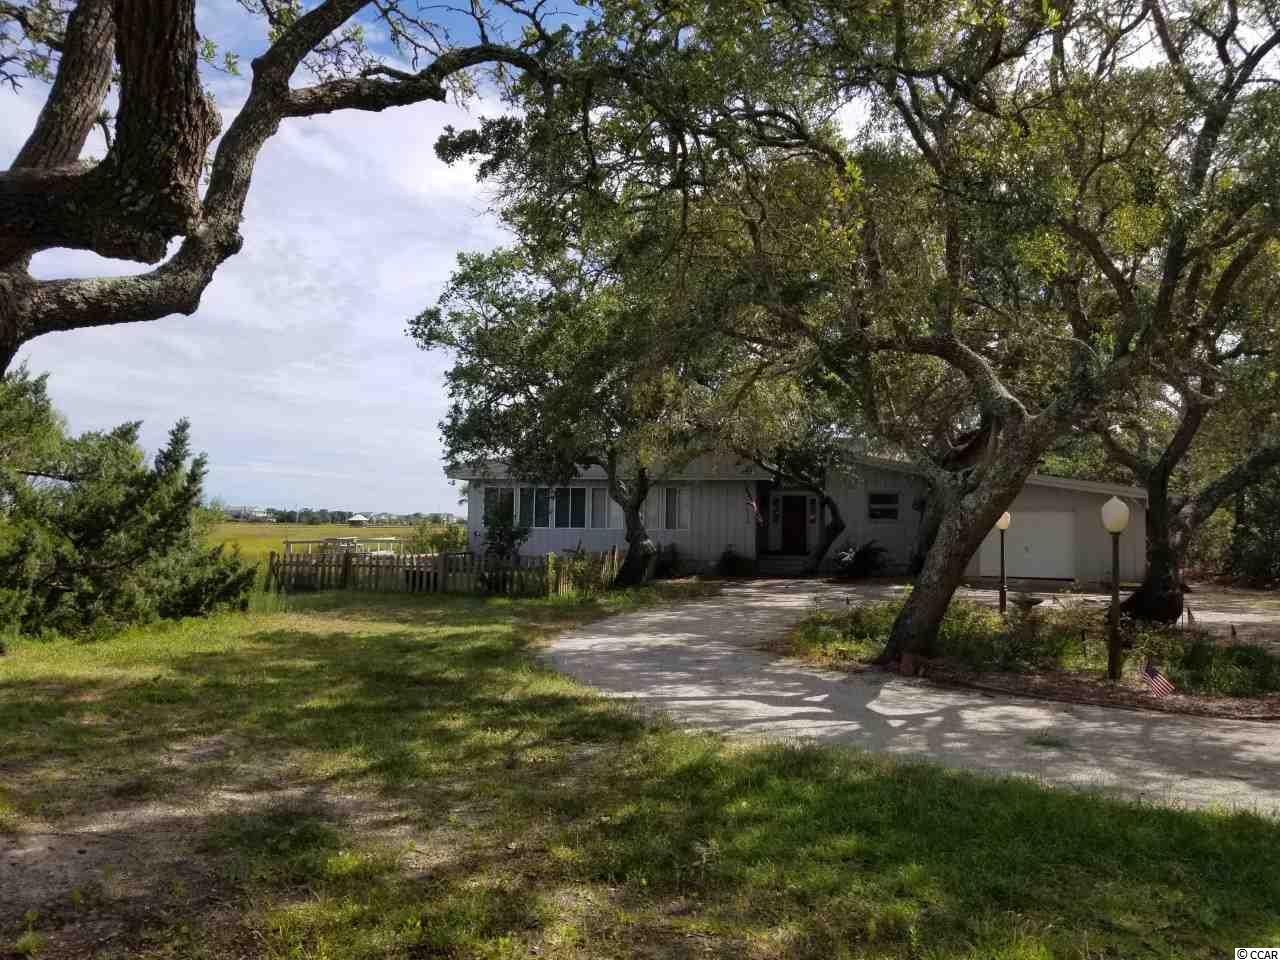 """Breathe in the salt marsh air and pluff mud and let the worries of the day wash away as you unwind on your back deck overlooking the gorgeous Midway creek and inlet, sipping a cool drink! Here's your unique opportunity to own a large, private peninsula surrounded by salt water, magnificent creek views, dock and swimming pool - there is simply no other property like this on the Grand Strand. Must see to appreciate this picturesque 1.21 acre property with majestic live oak trees and ample space to enjoy the Pawleys Island lifestyle. Once the family dream home of the iconic Louis Bryan """"Bumpy"""" Thompson of Pawleys Island, this 4-bedroom, 4-bath home, has been the site of many idyllic Pawleys Island family memories: parties, holidays, weddings, gatherings, and all-around fun. The home boasts an incredible deck and pool area with creek access and amazing views of the creek and inlet. The inside features large, open rooms, a huge sunken great room, perfect for family gatherings with a gorgeous large mantlepiece, a cozy """"movie room,"""" and an open concept kitchen and dining room. There are three large bedrooms in the main house, and a fourth bedroom in the attached mother-in-law suite. The suite features a large bedroom and bathroom, living room, and efficiency kitchen and can be closed off from the rest of the house – perfect for potential rental income. The home could use some TLC, but has amazing potential on one of the most unique lots in the area. Being here feels like your own private island – yet still just a short drive from all the best the Lowcountry has to offer. This wonderful Midway Creek property is conveniently located to Brookgreen Gardens and Litchfield Beaches, Pawleys Island and Huntington Beach State Park, restaurants, shopping, art galleries and medical facilities. There are also many world class golf courses in the Pawleys Island area. Come, relax, and play in the sun at Pawleys Island, South Carolina! Pawleys Island is centrally located to everything yo"""